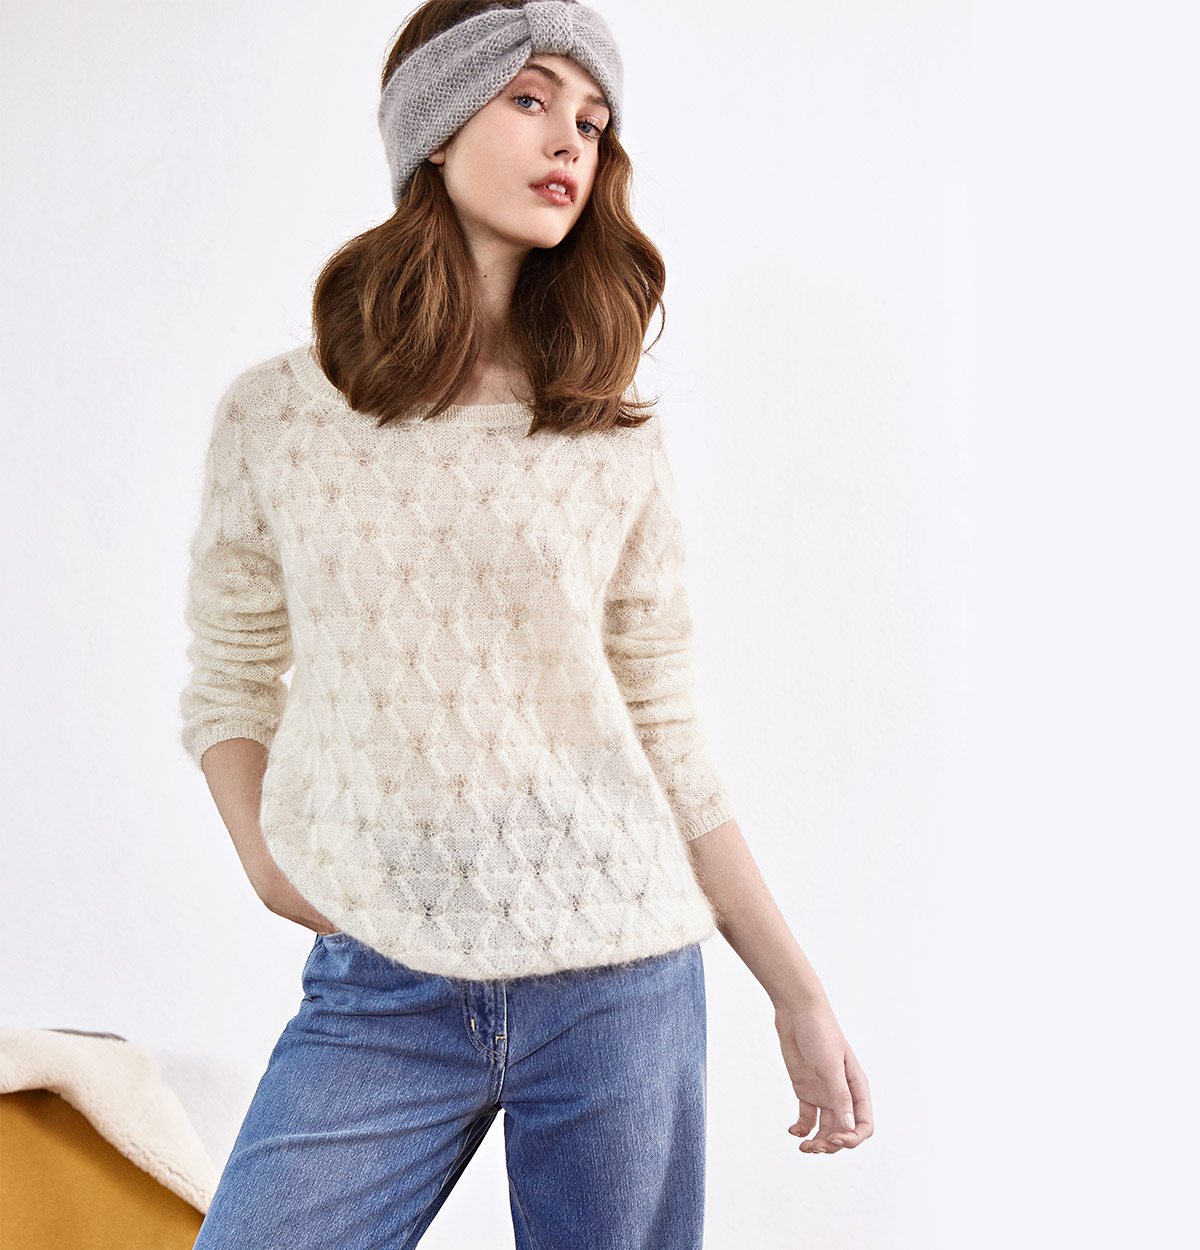 Look - Wide cropped jeans, Mohair headband